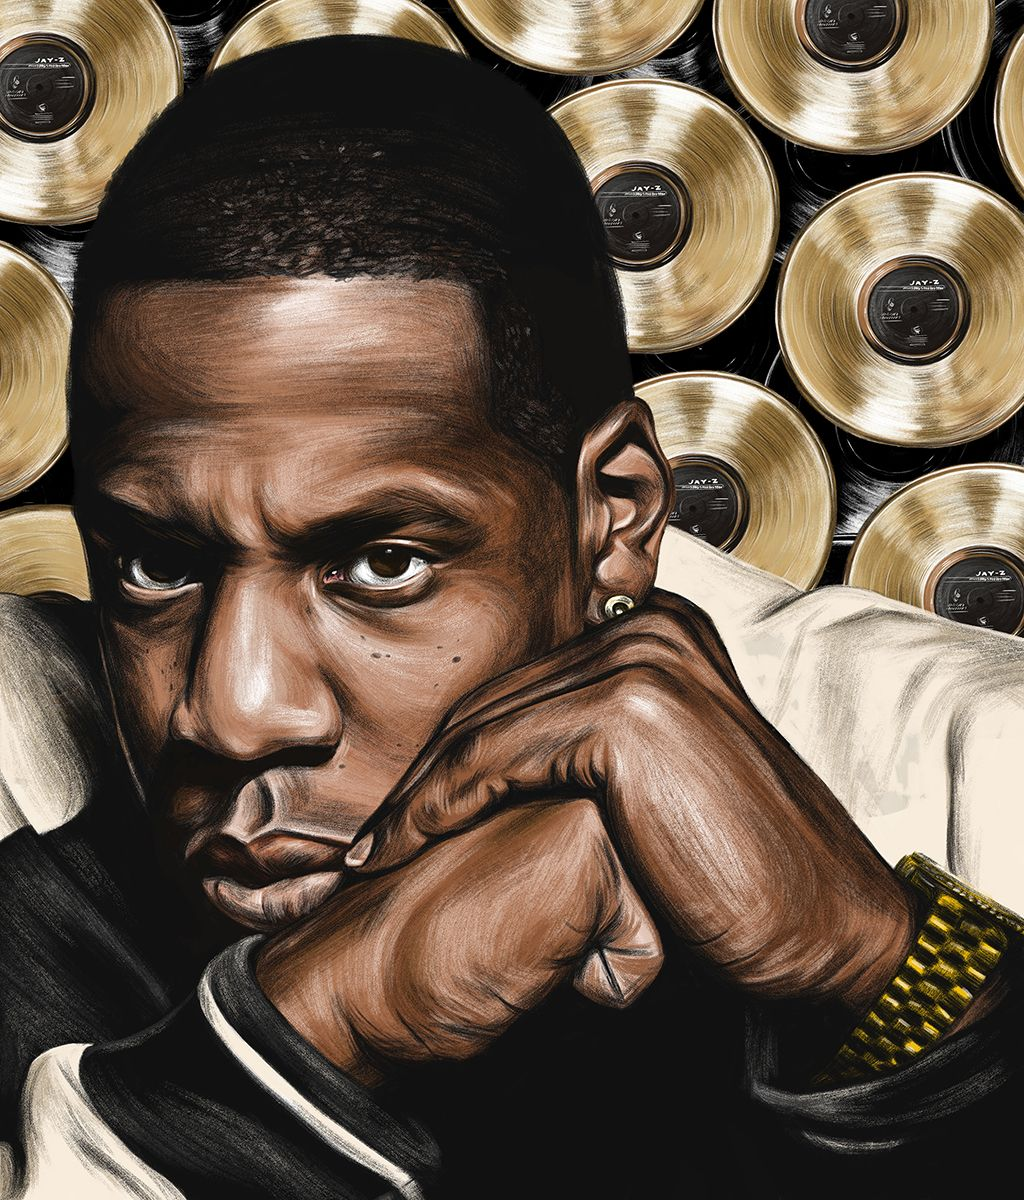 d429614f4d1 All 274 Jay-Z Songs